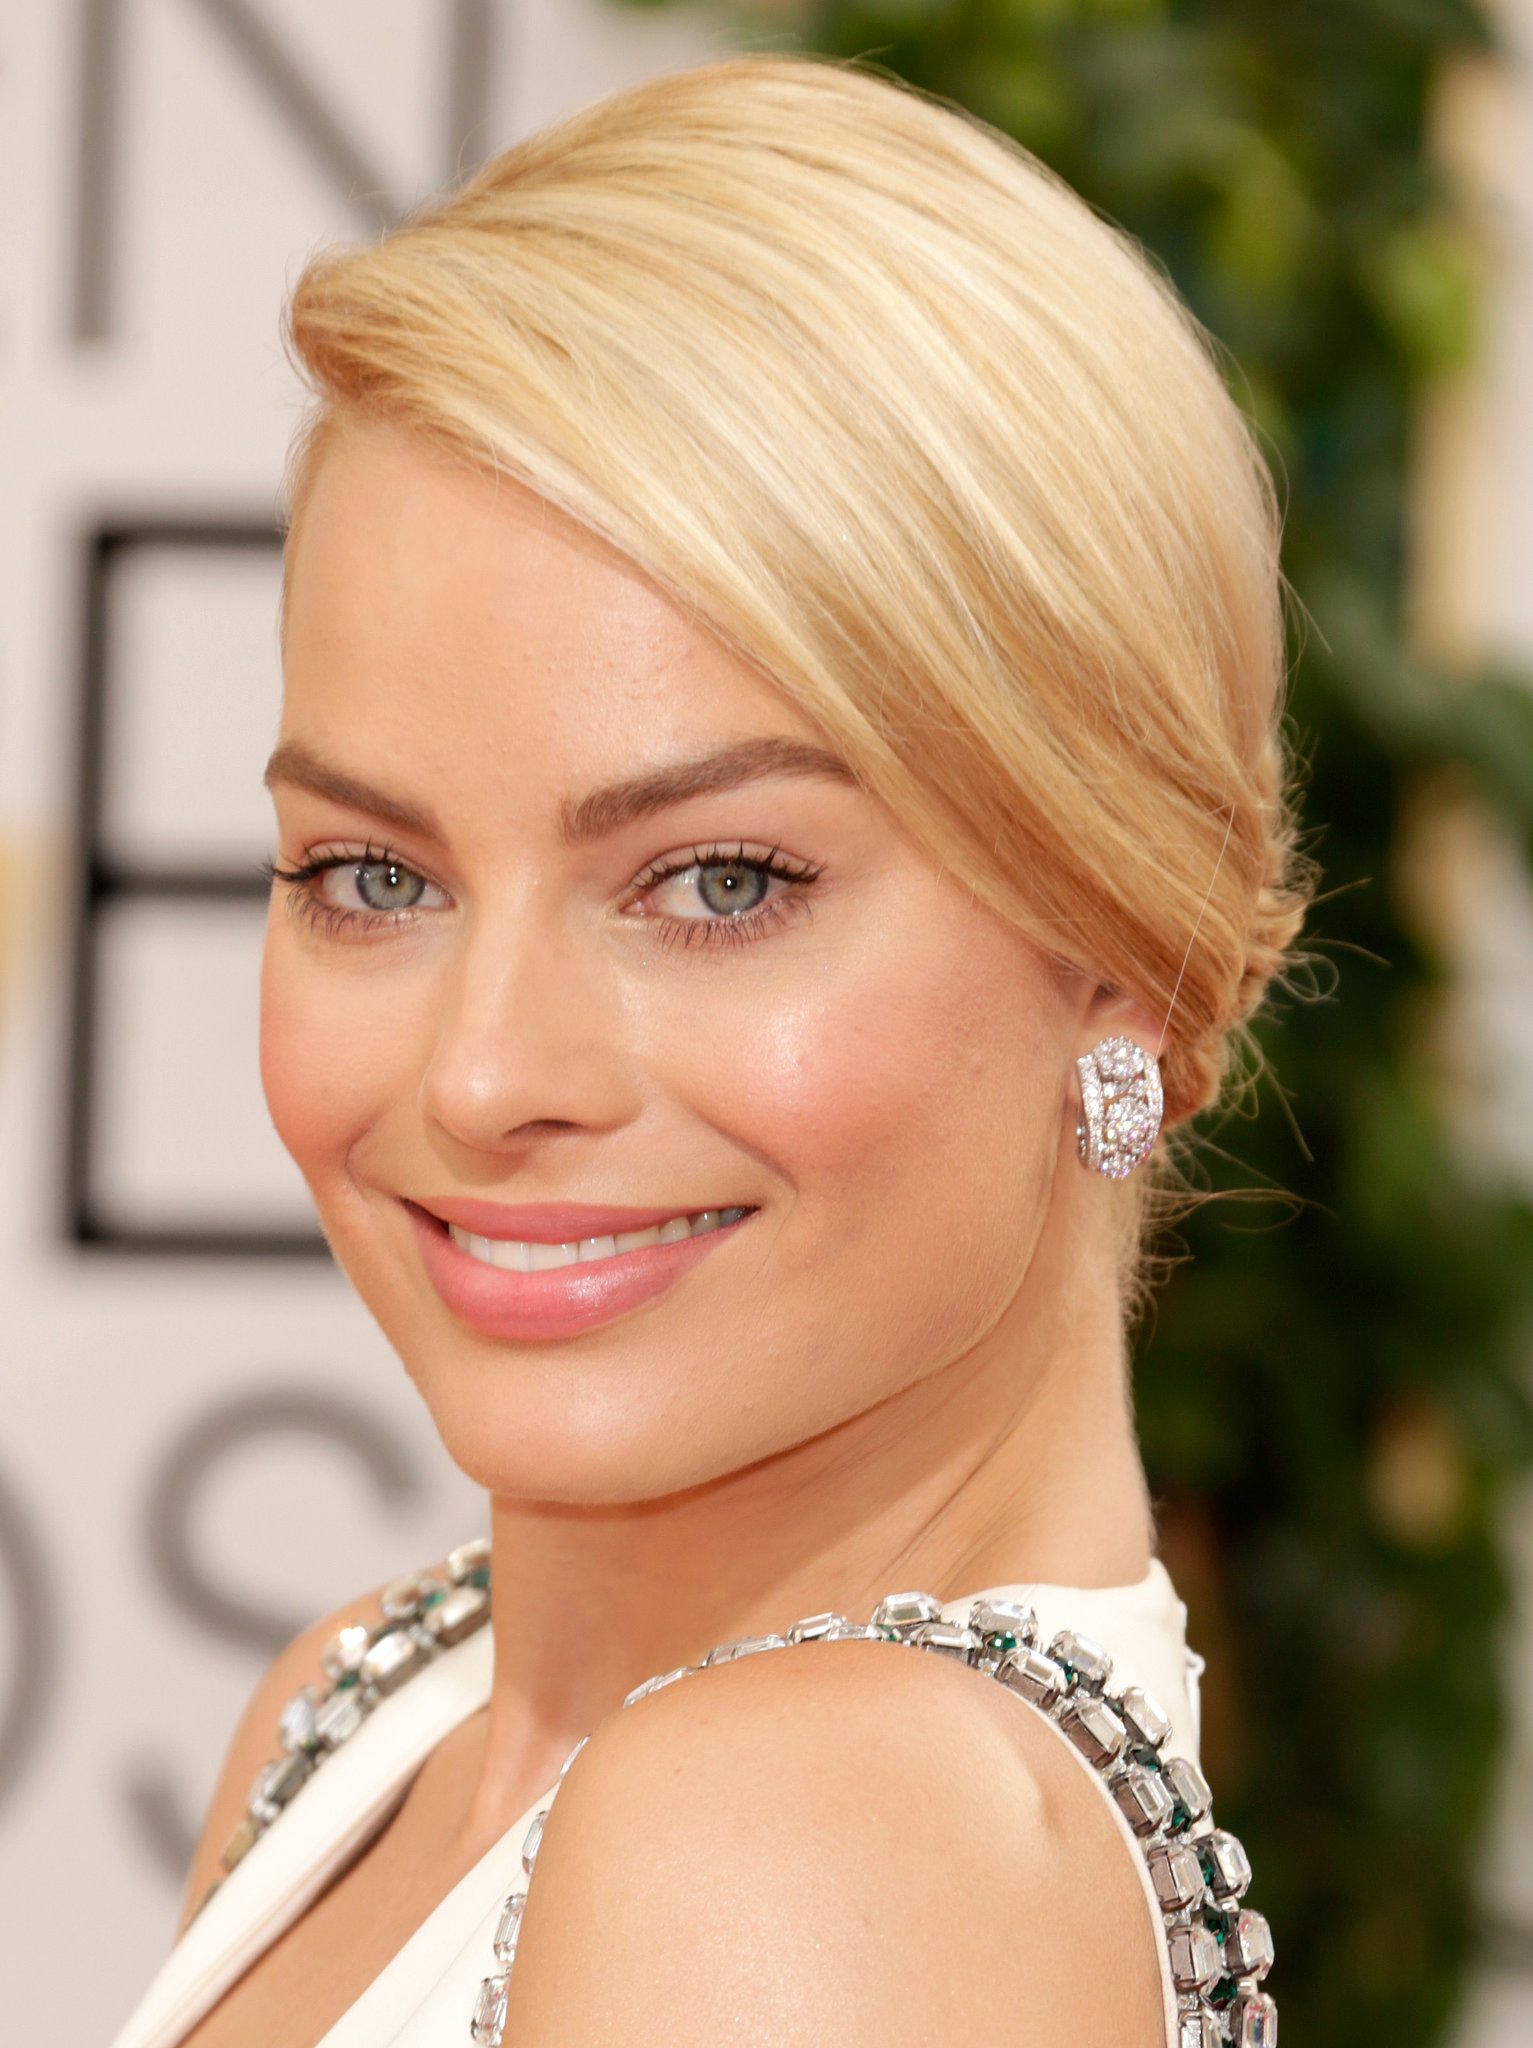 Margot Robbie accessorized with major diamond earrings.